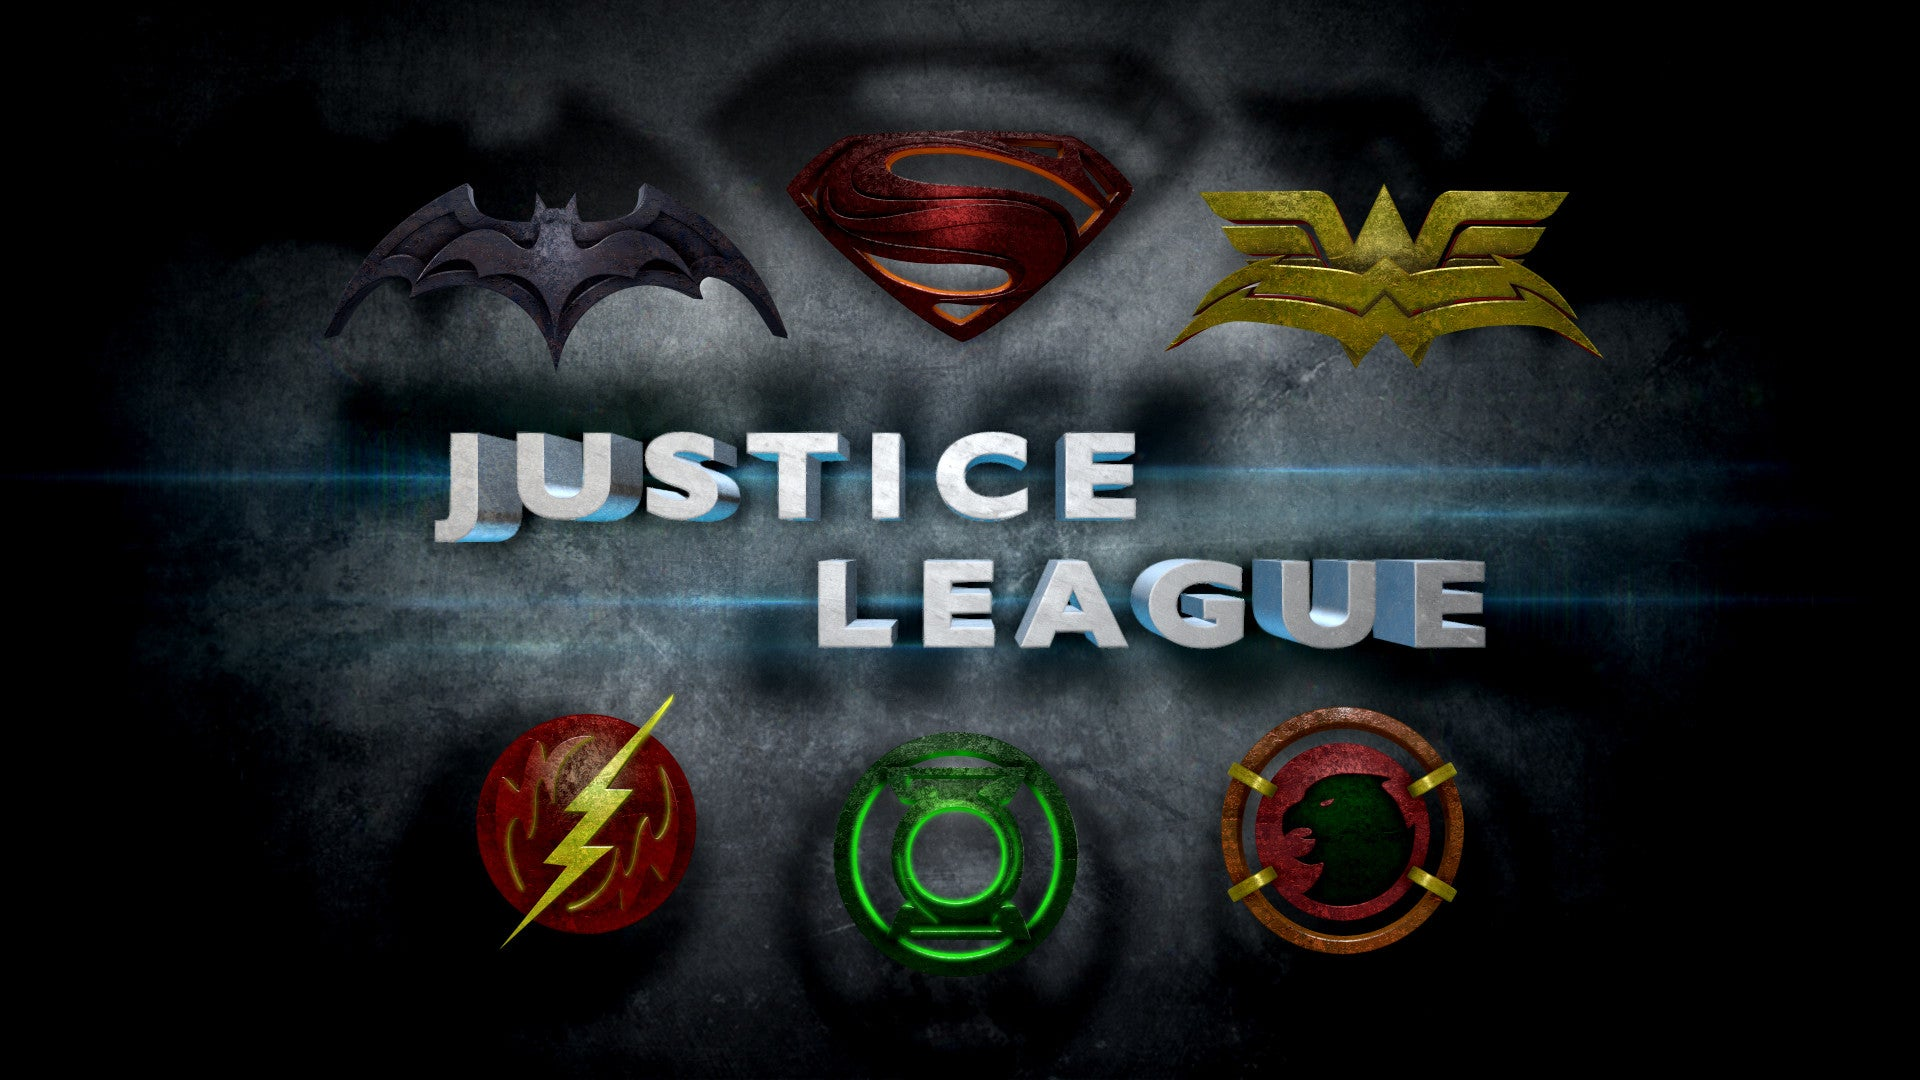 Justice League Logos in the Style of Man of Steel - Imgur